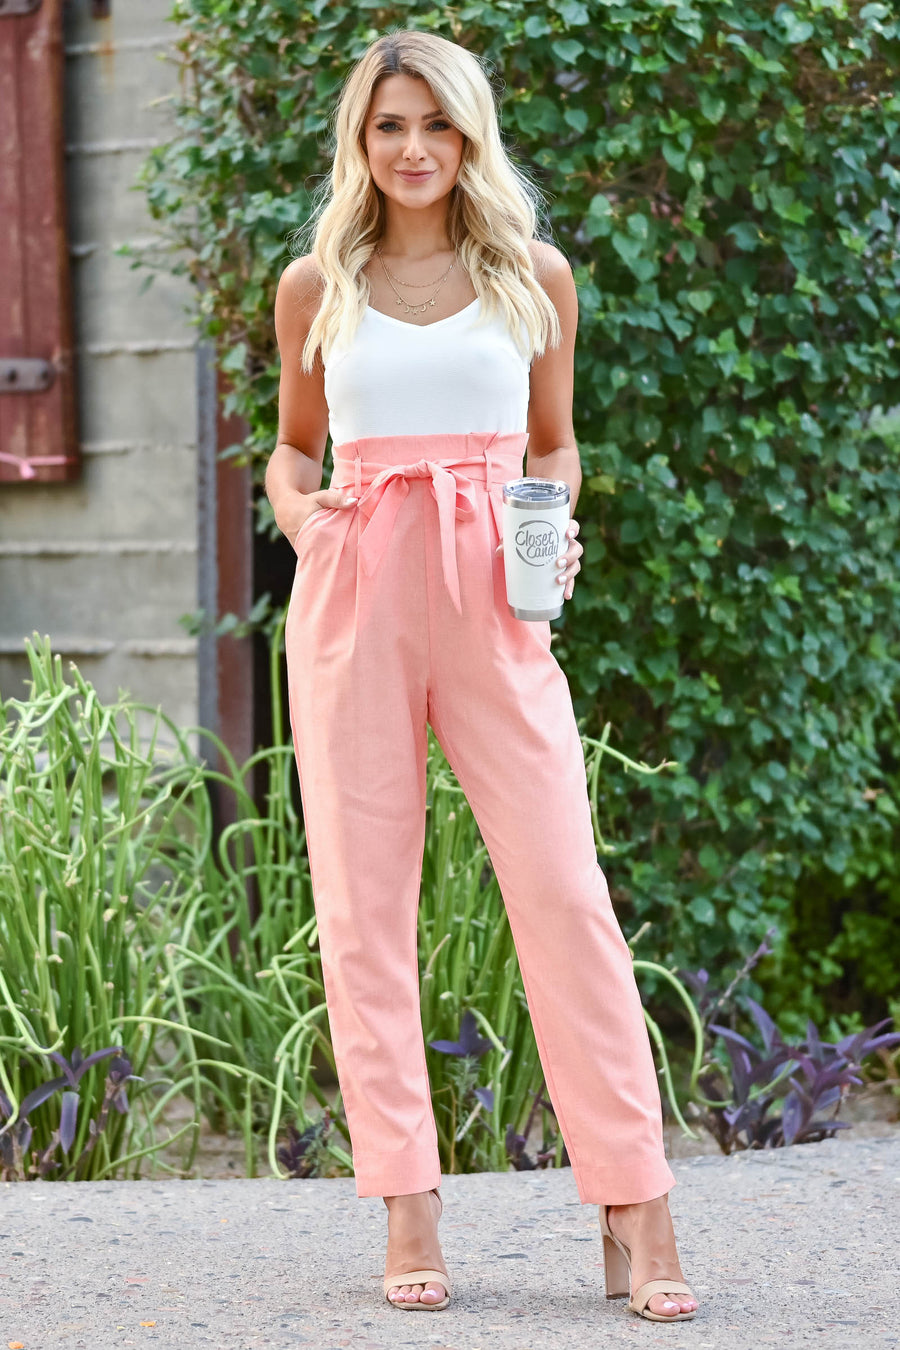 Girl's Getaway Jumpsuit - Coral Coral and ivory jumpsuit with scoop neckline, adjustable spaghetti straps, and side pockets. Bow can be tied in the front or back closet candy front